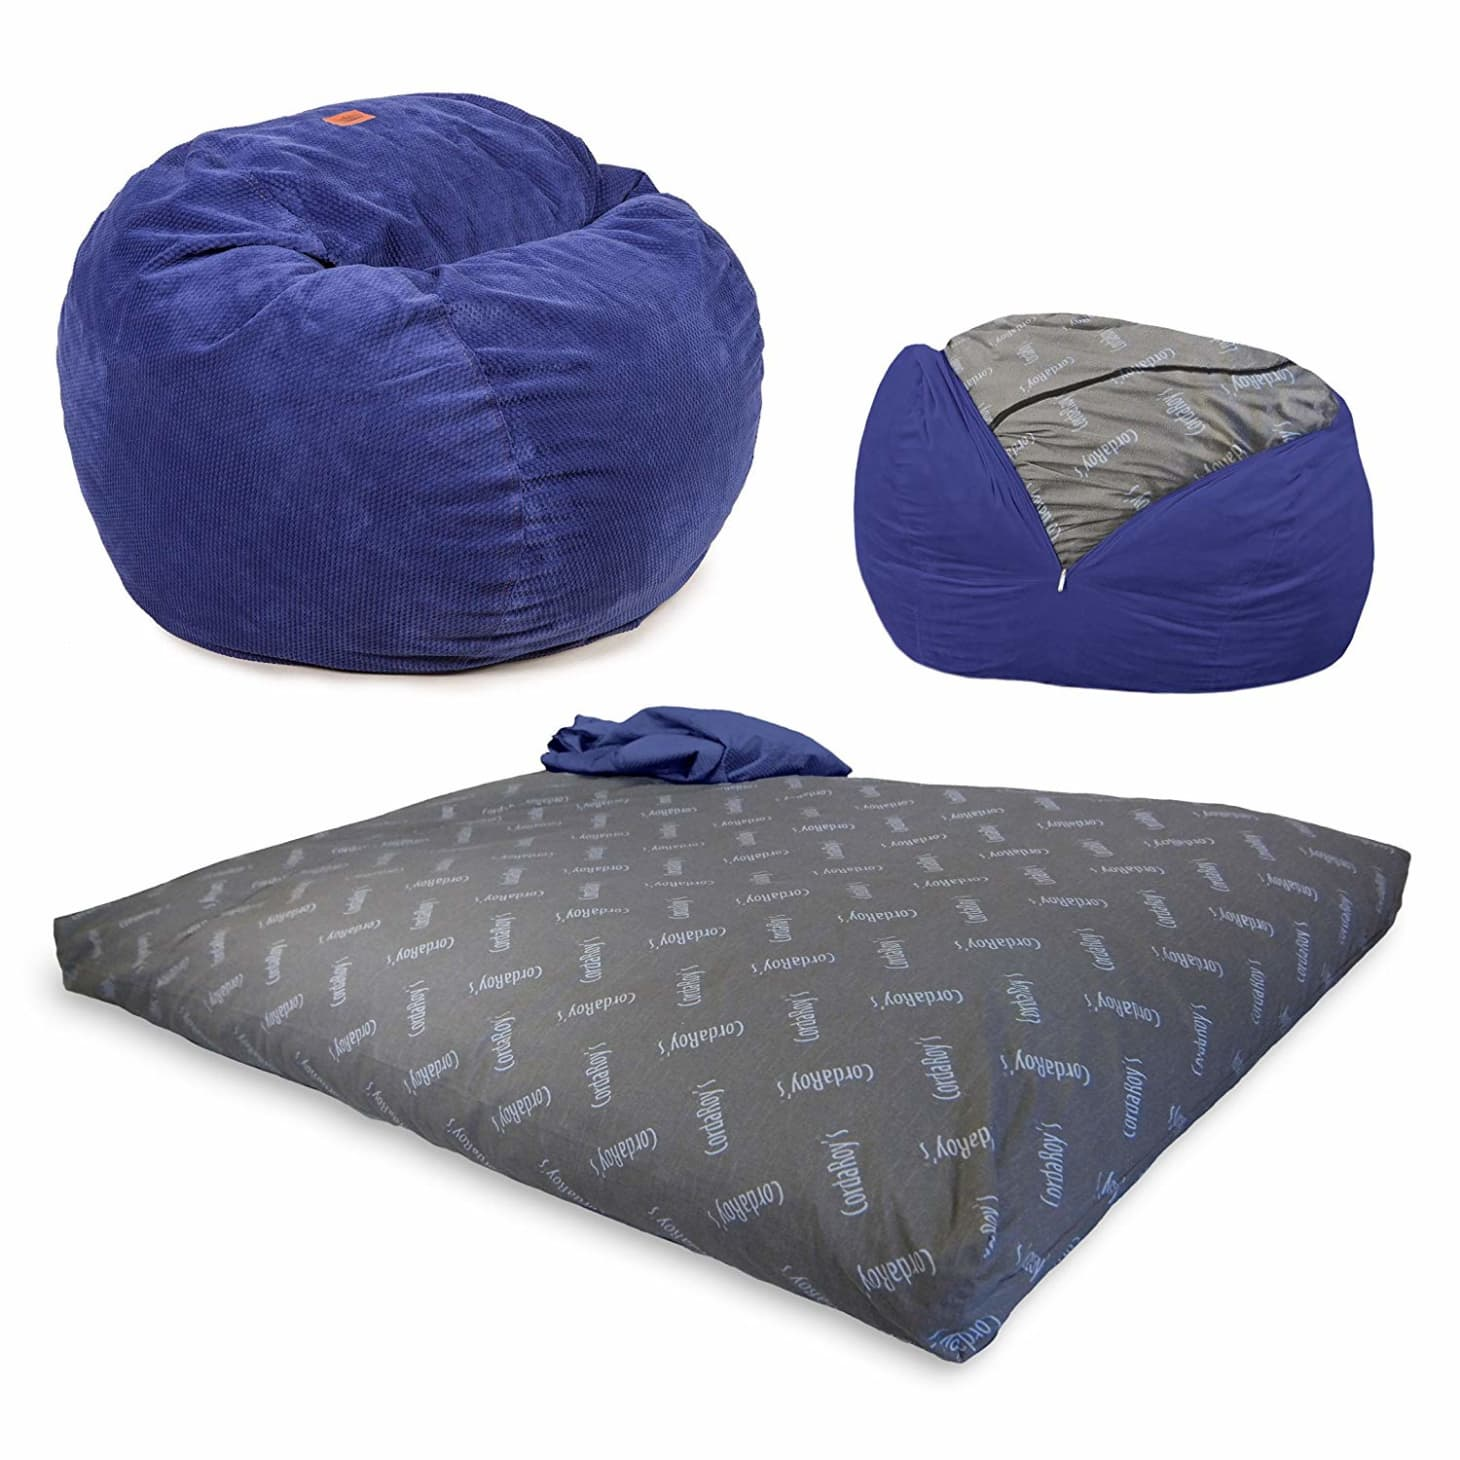 Shark Tank Bean Bag Is On Sale On Amazon | Apartment Therapy